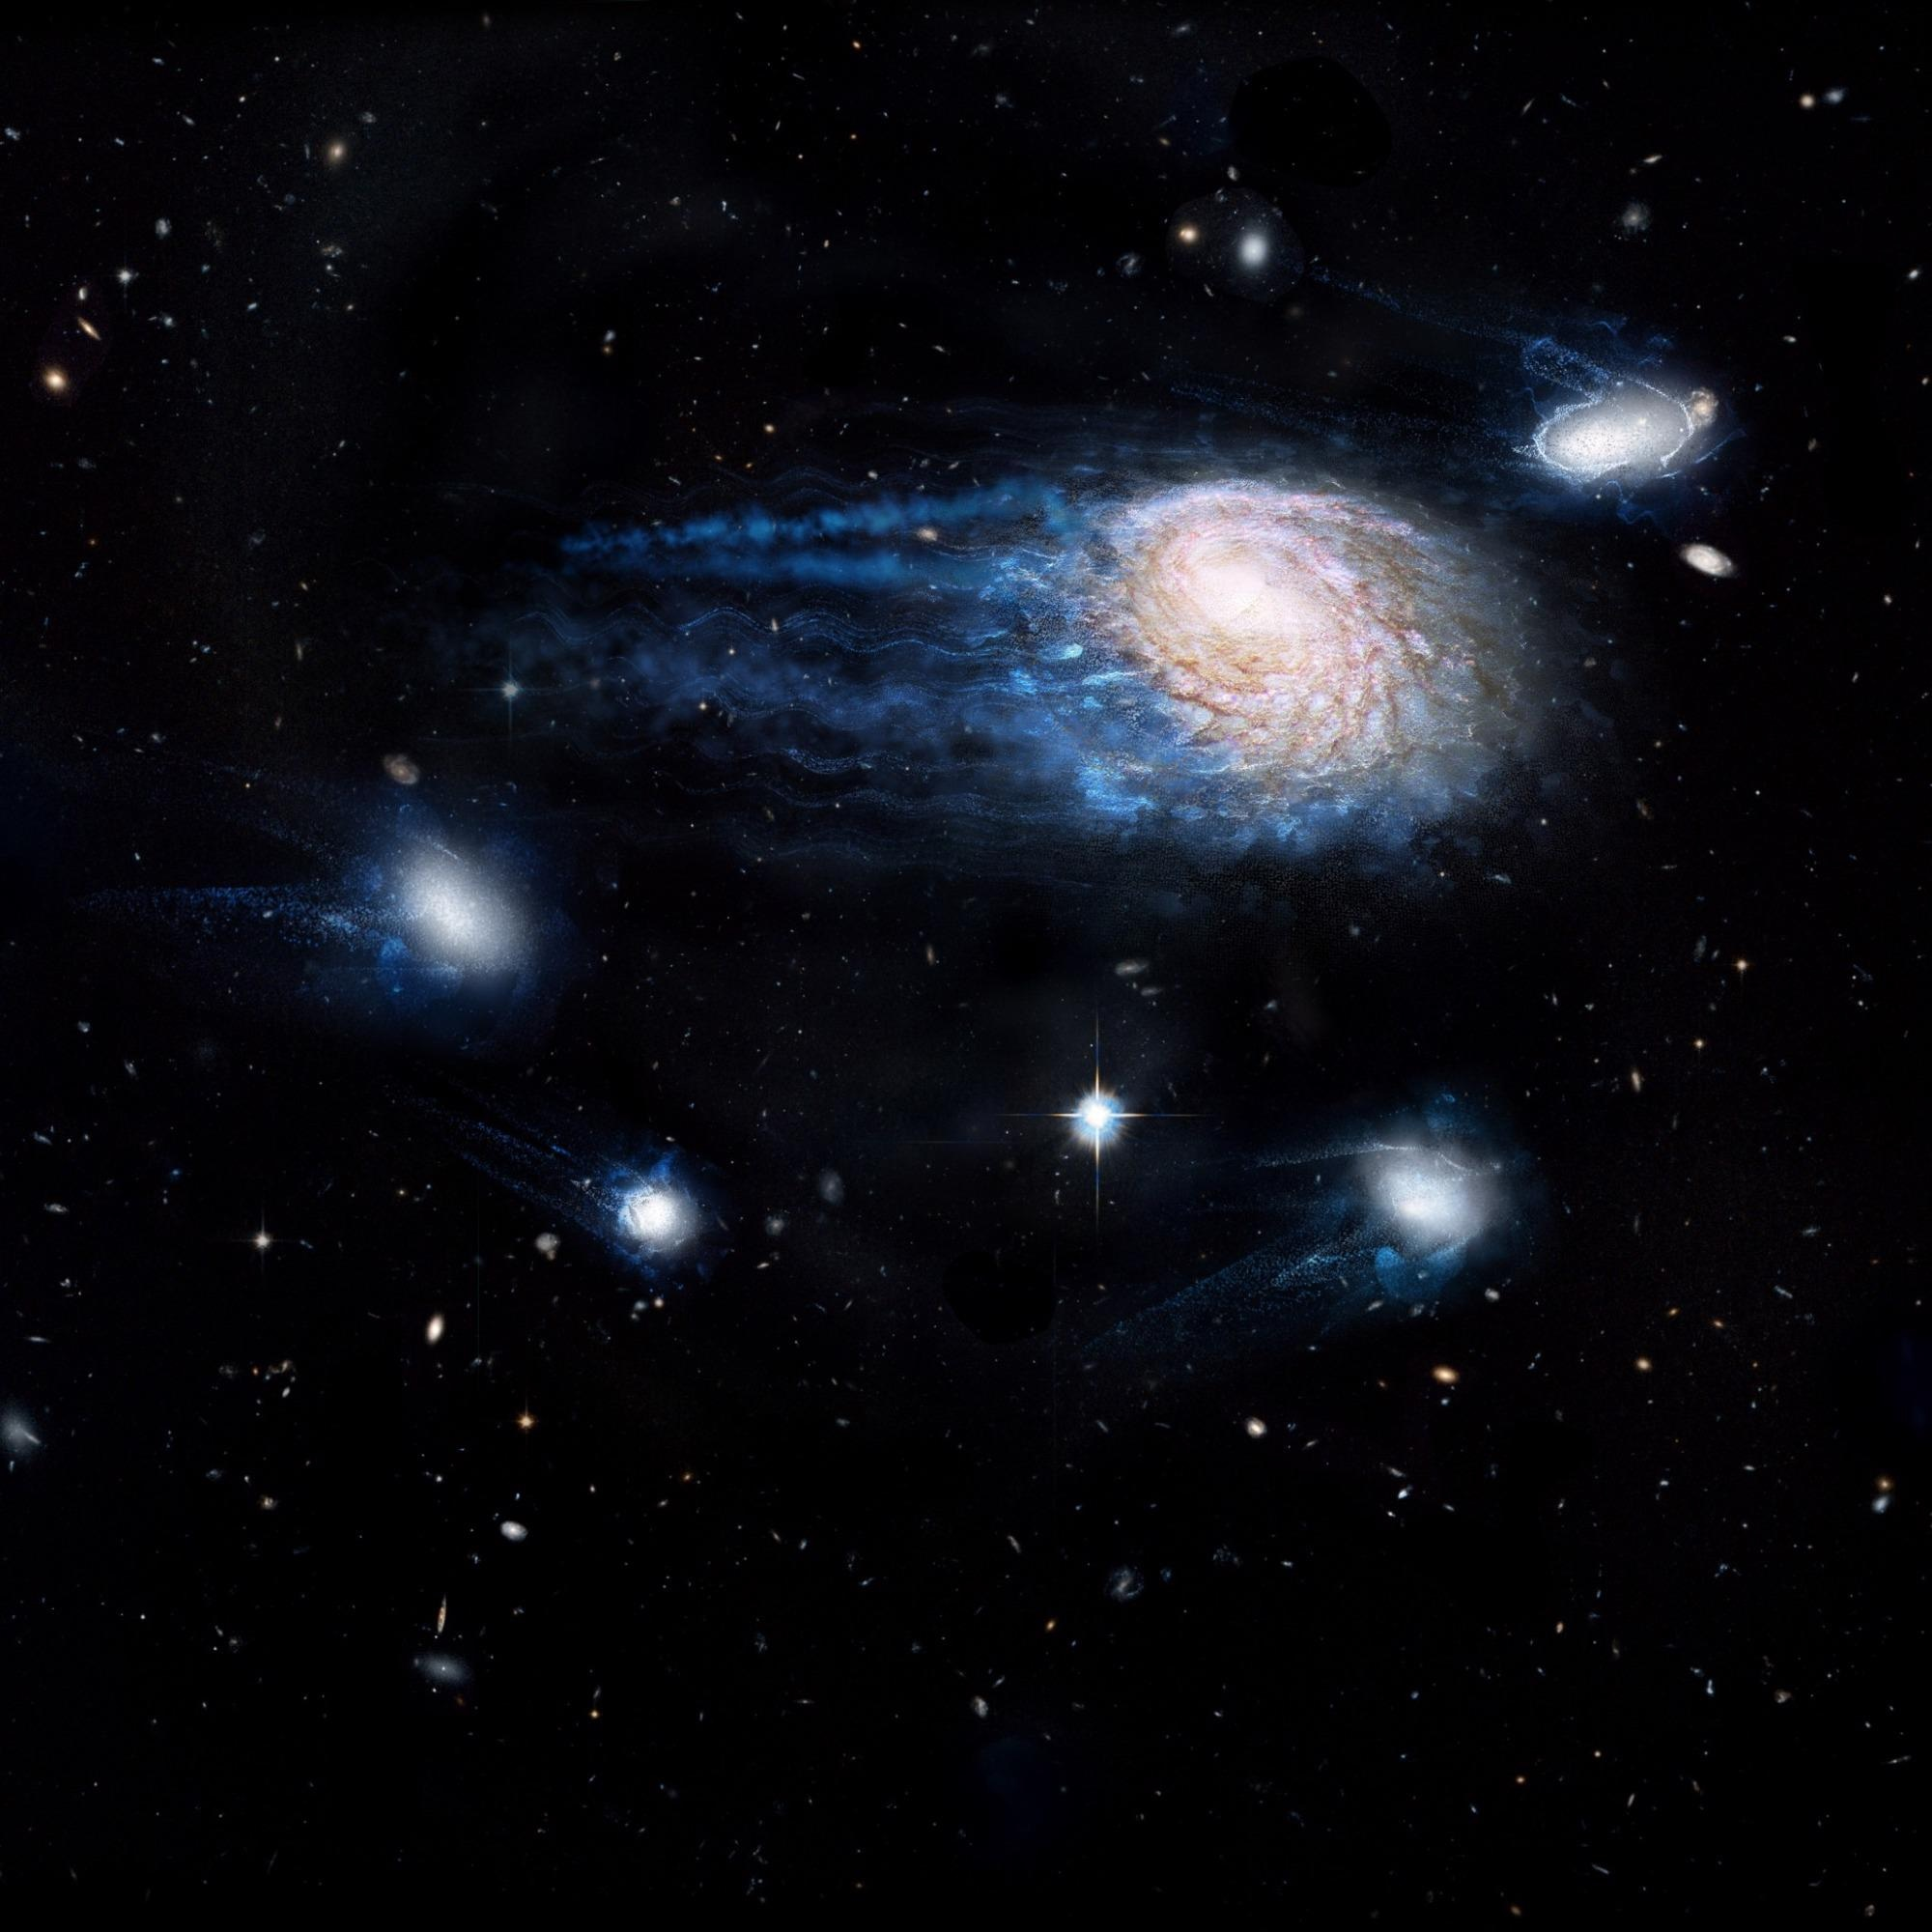 An artist's impression showing the increasing effect of ram-pressure stripping in removing gas from galaxies, sending them to an early death.